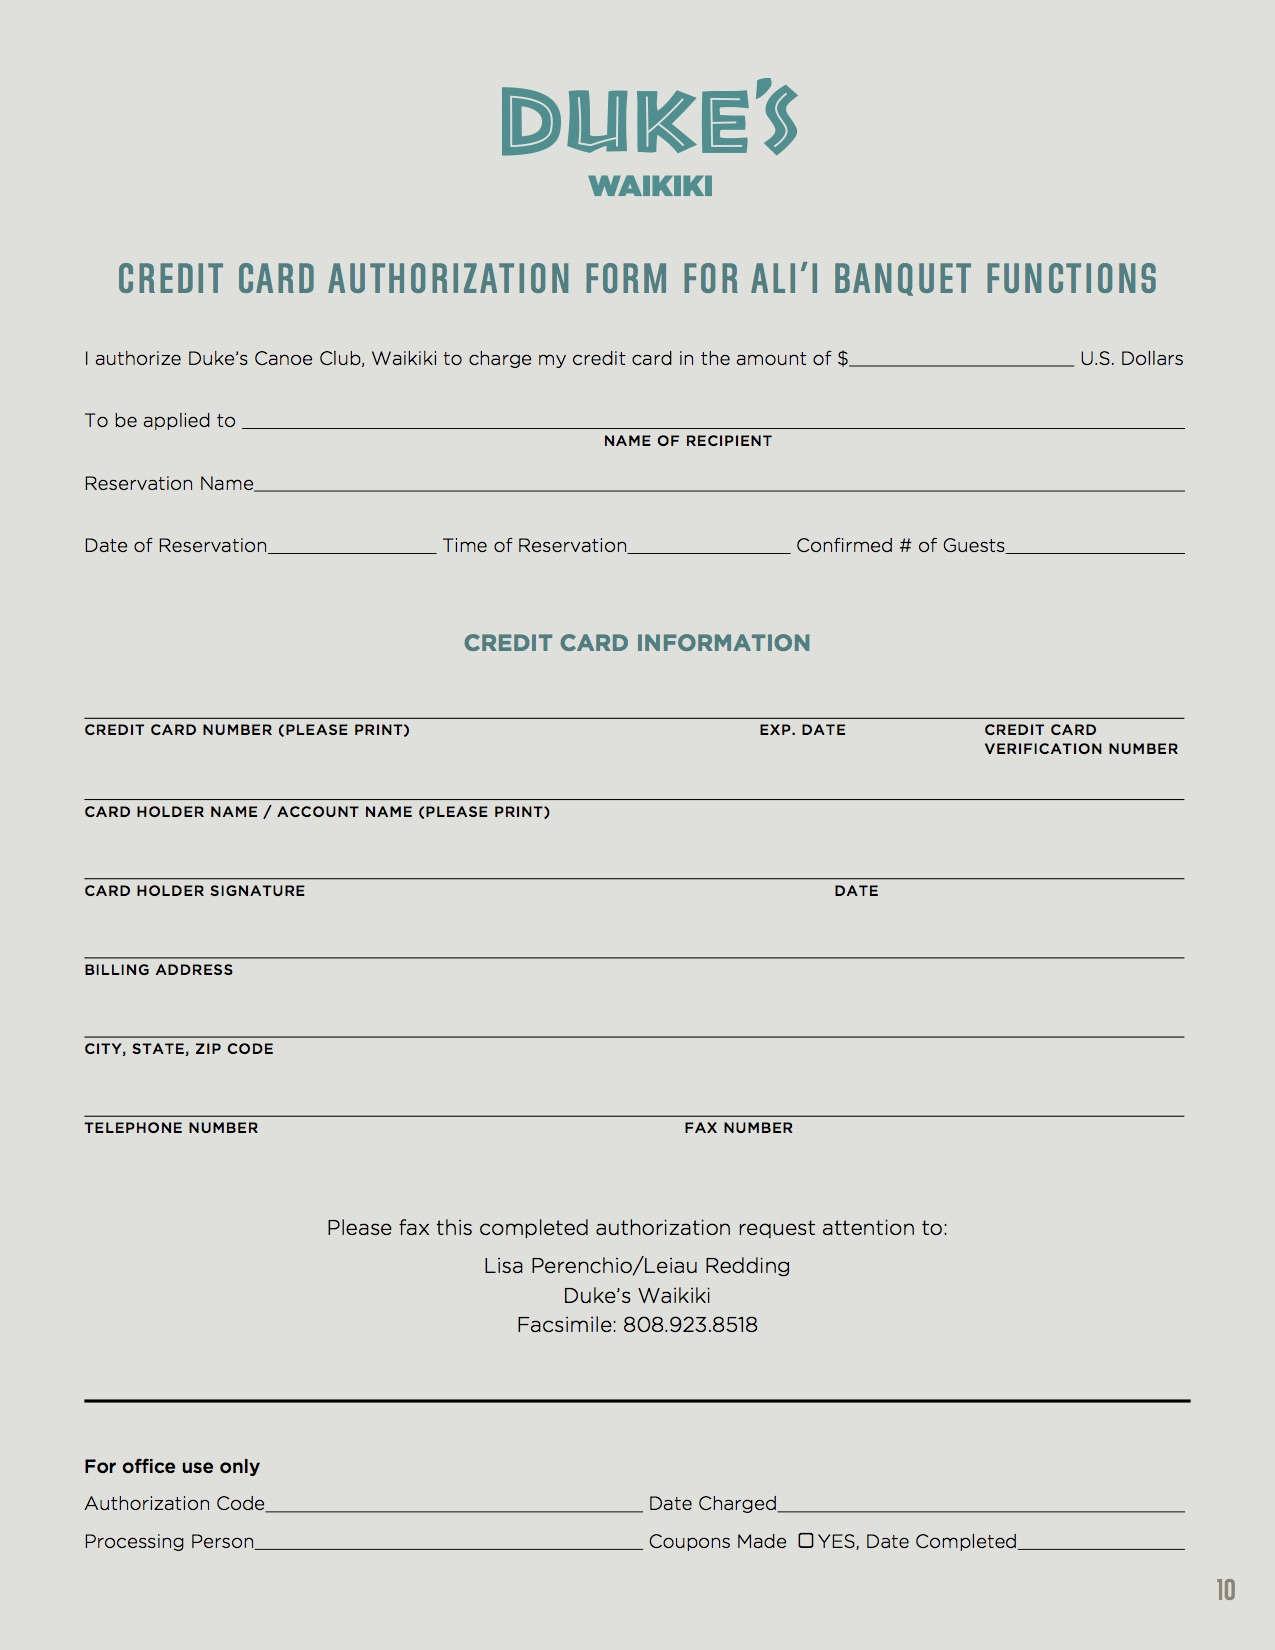 Credit Card Authorization for Banquets